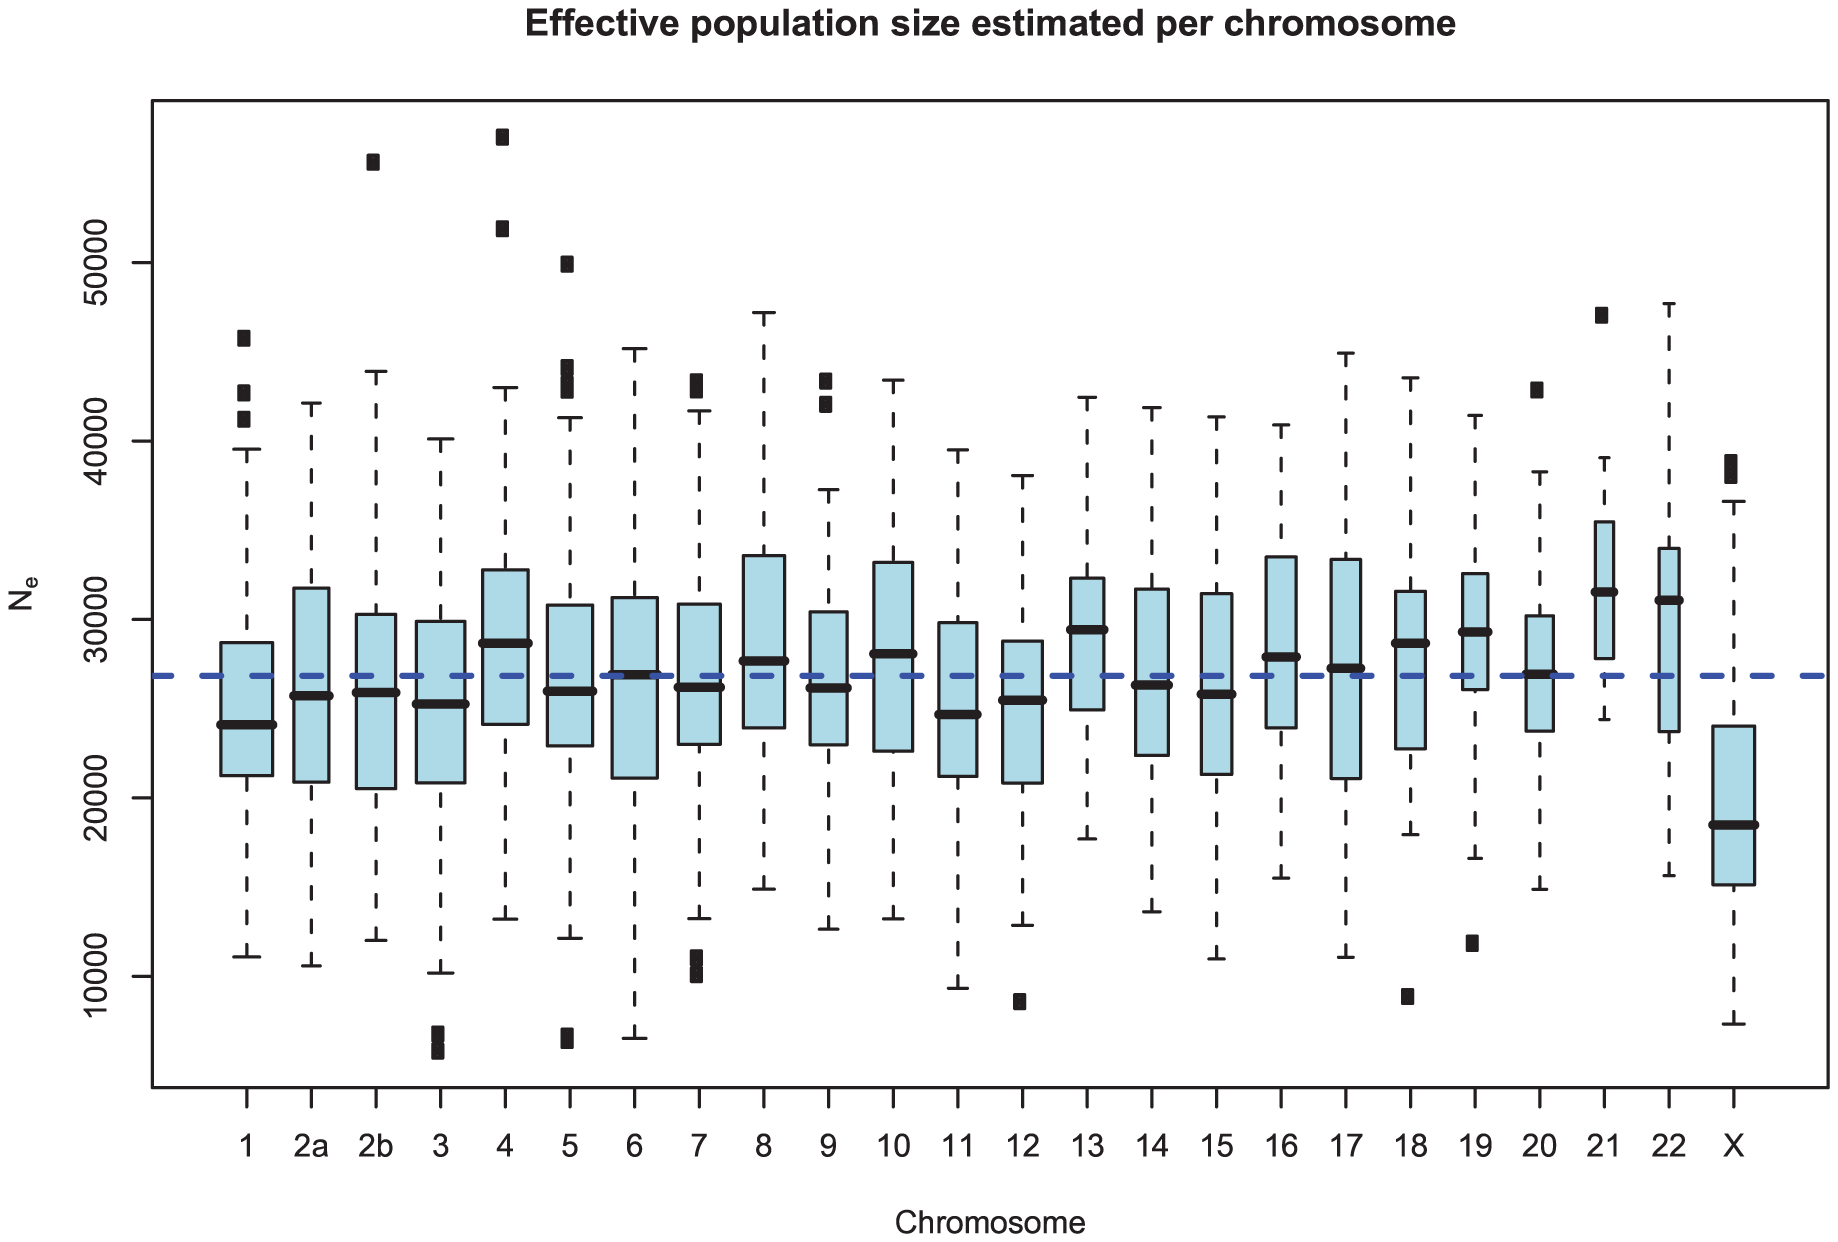 Distribution of effective population size estimates for each chromosome.